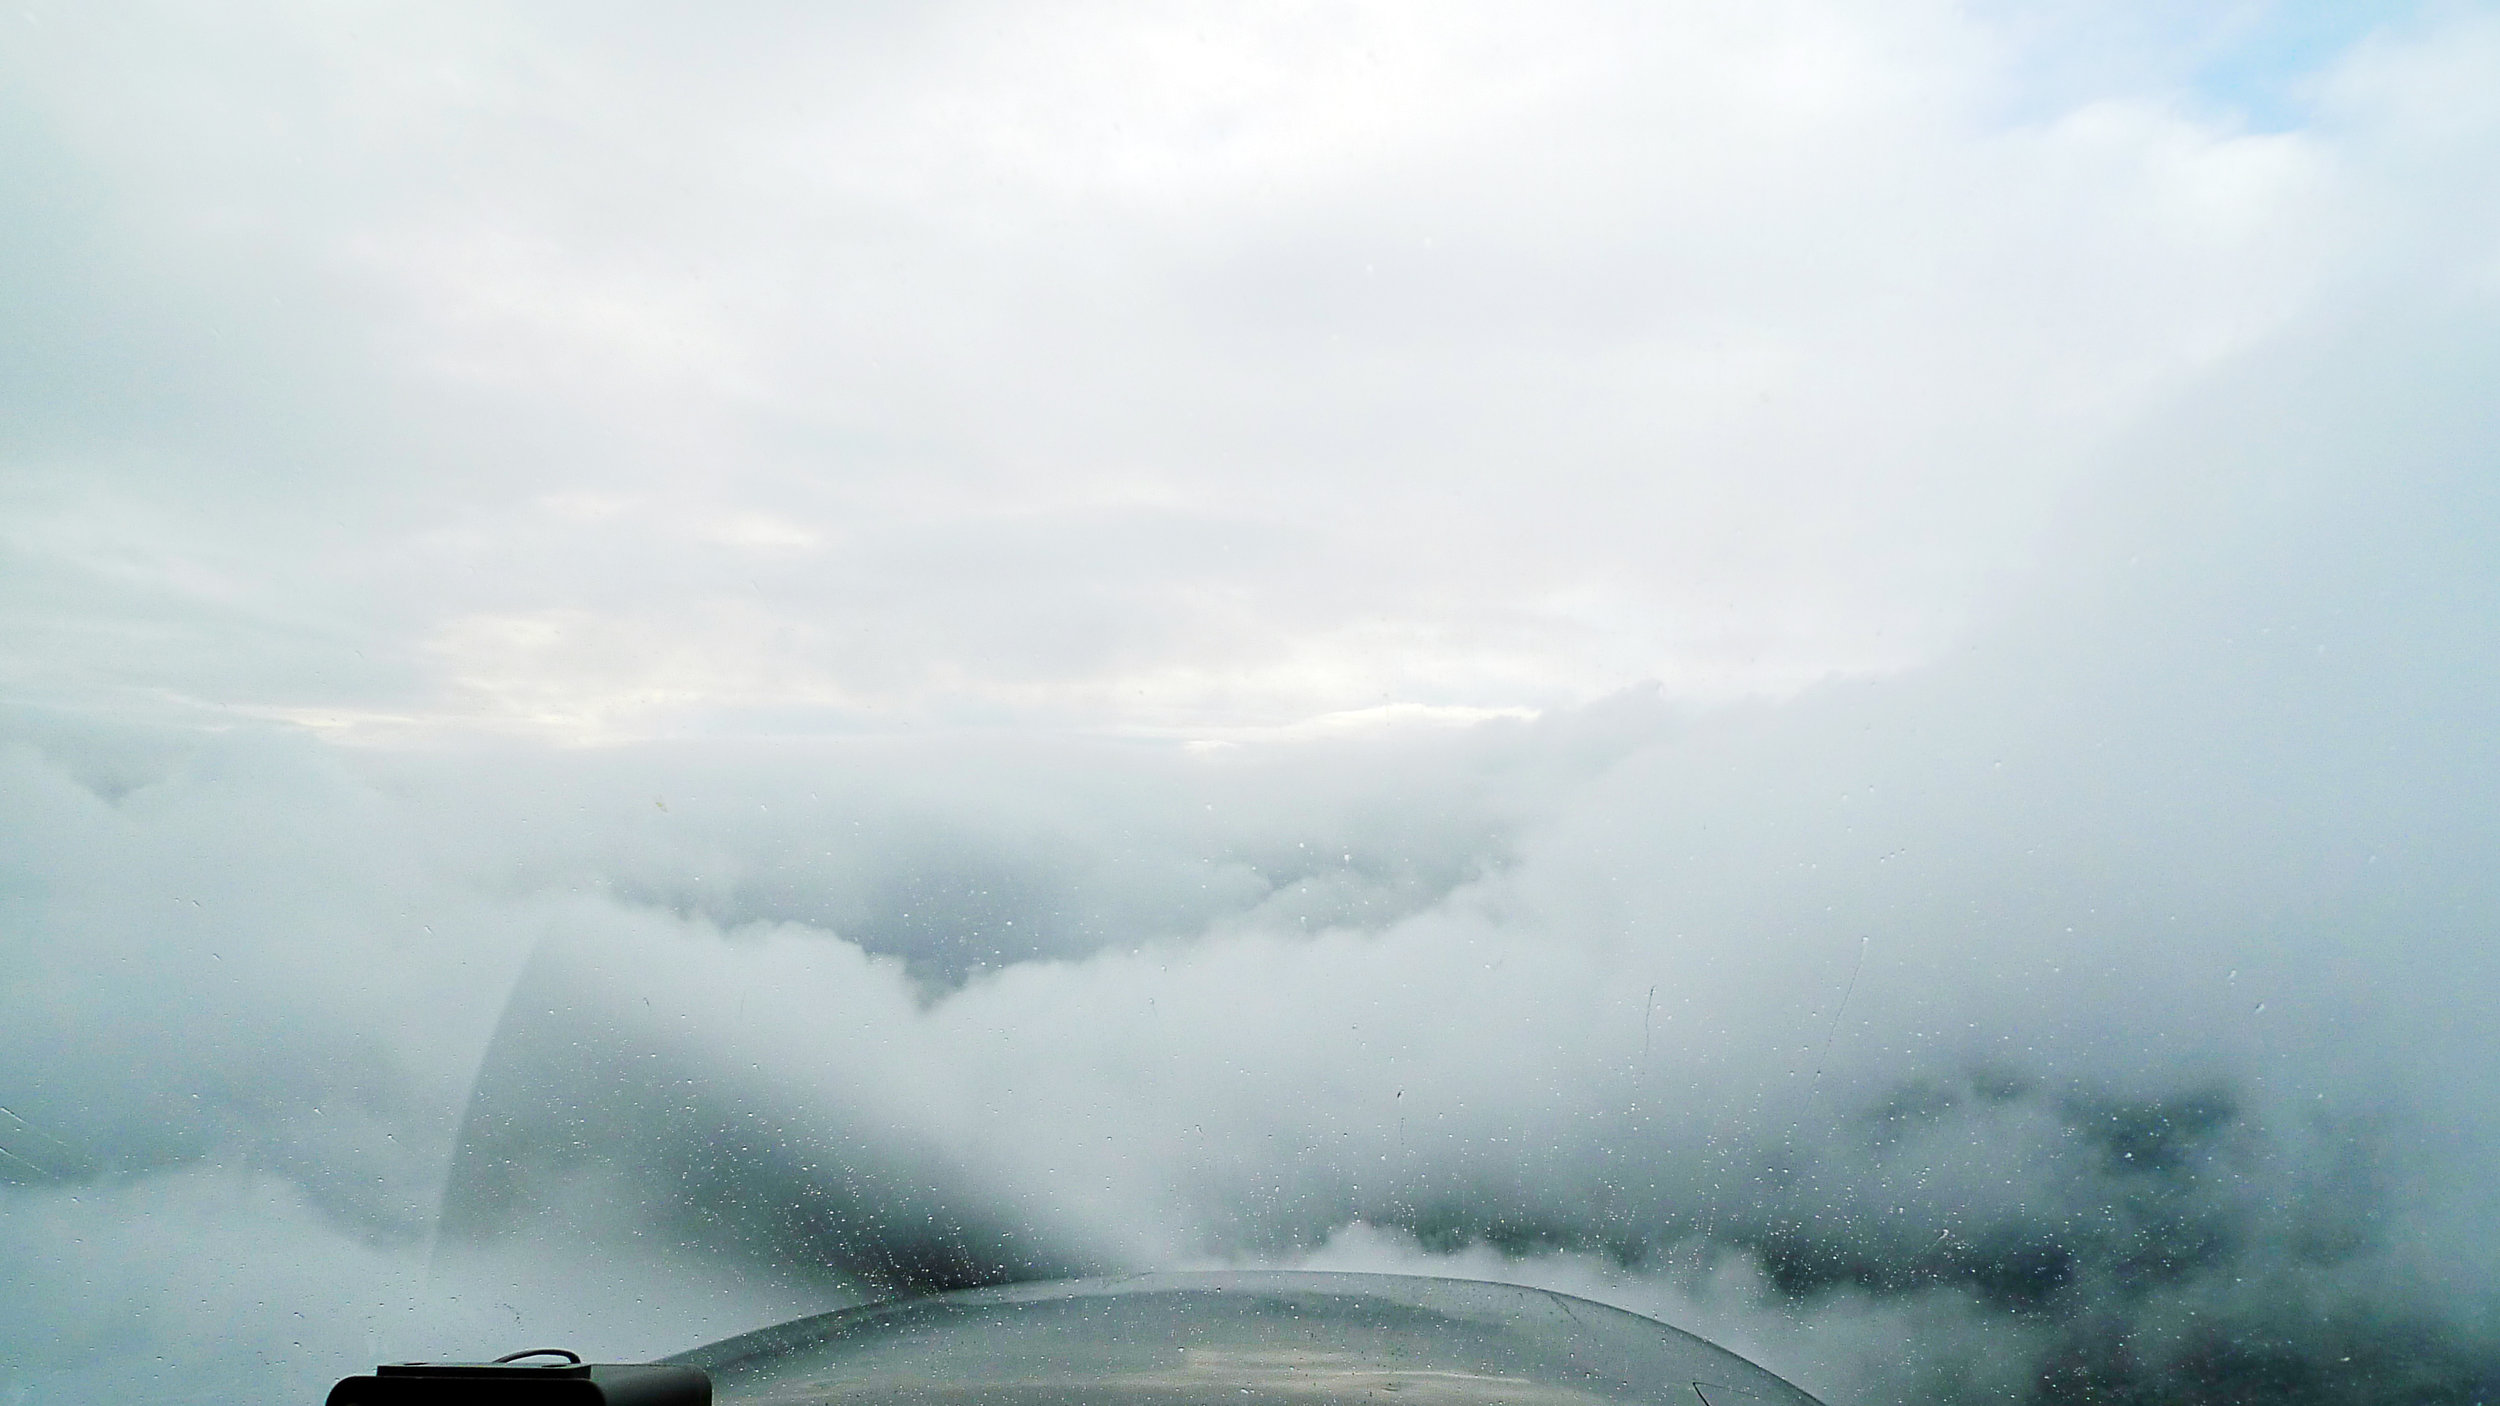 IFR in between cloud layers in a Cessna 172 . — source